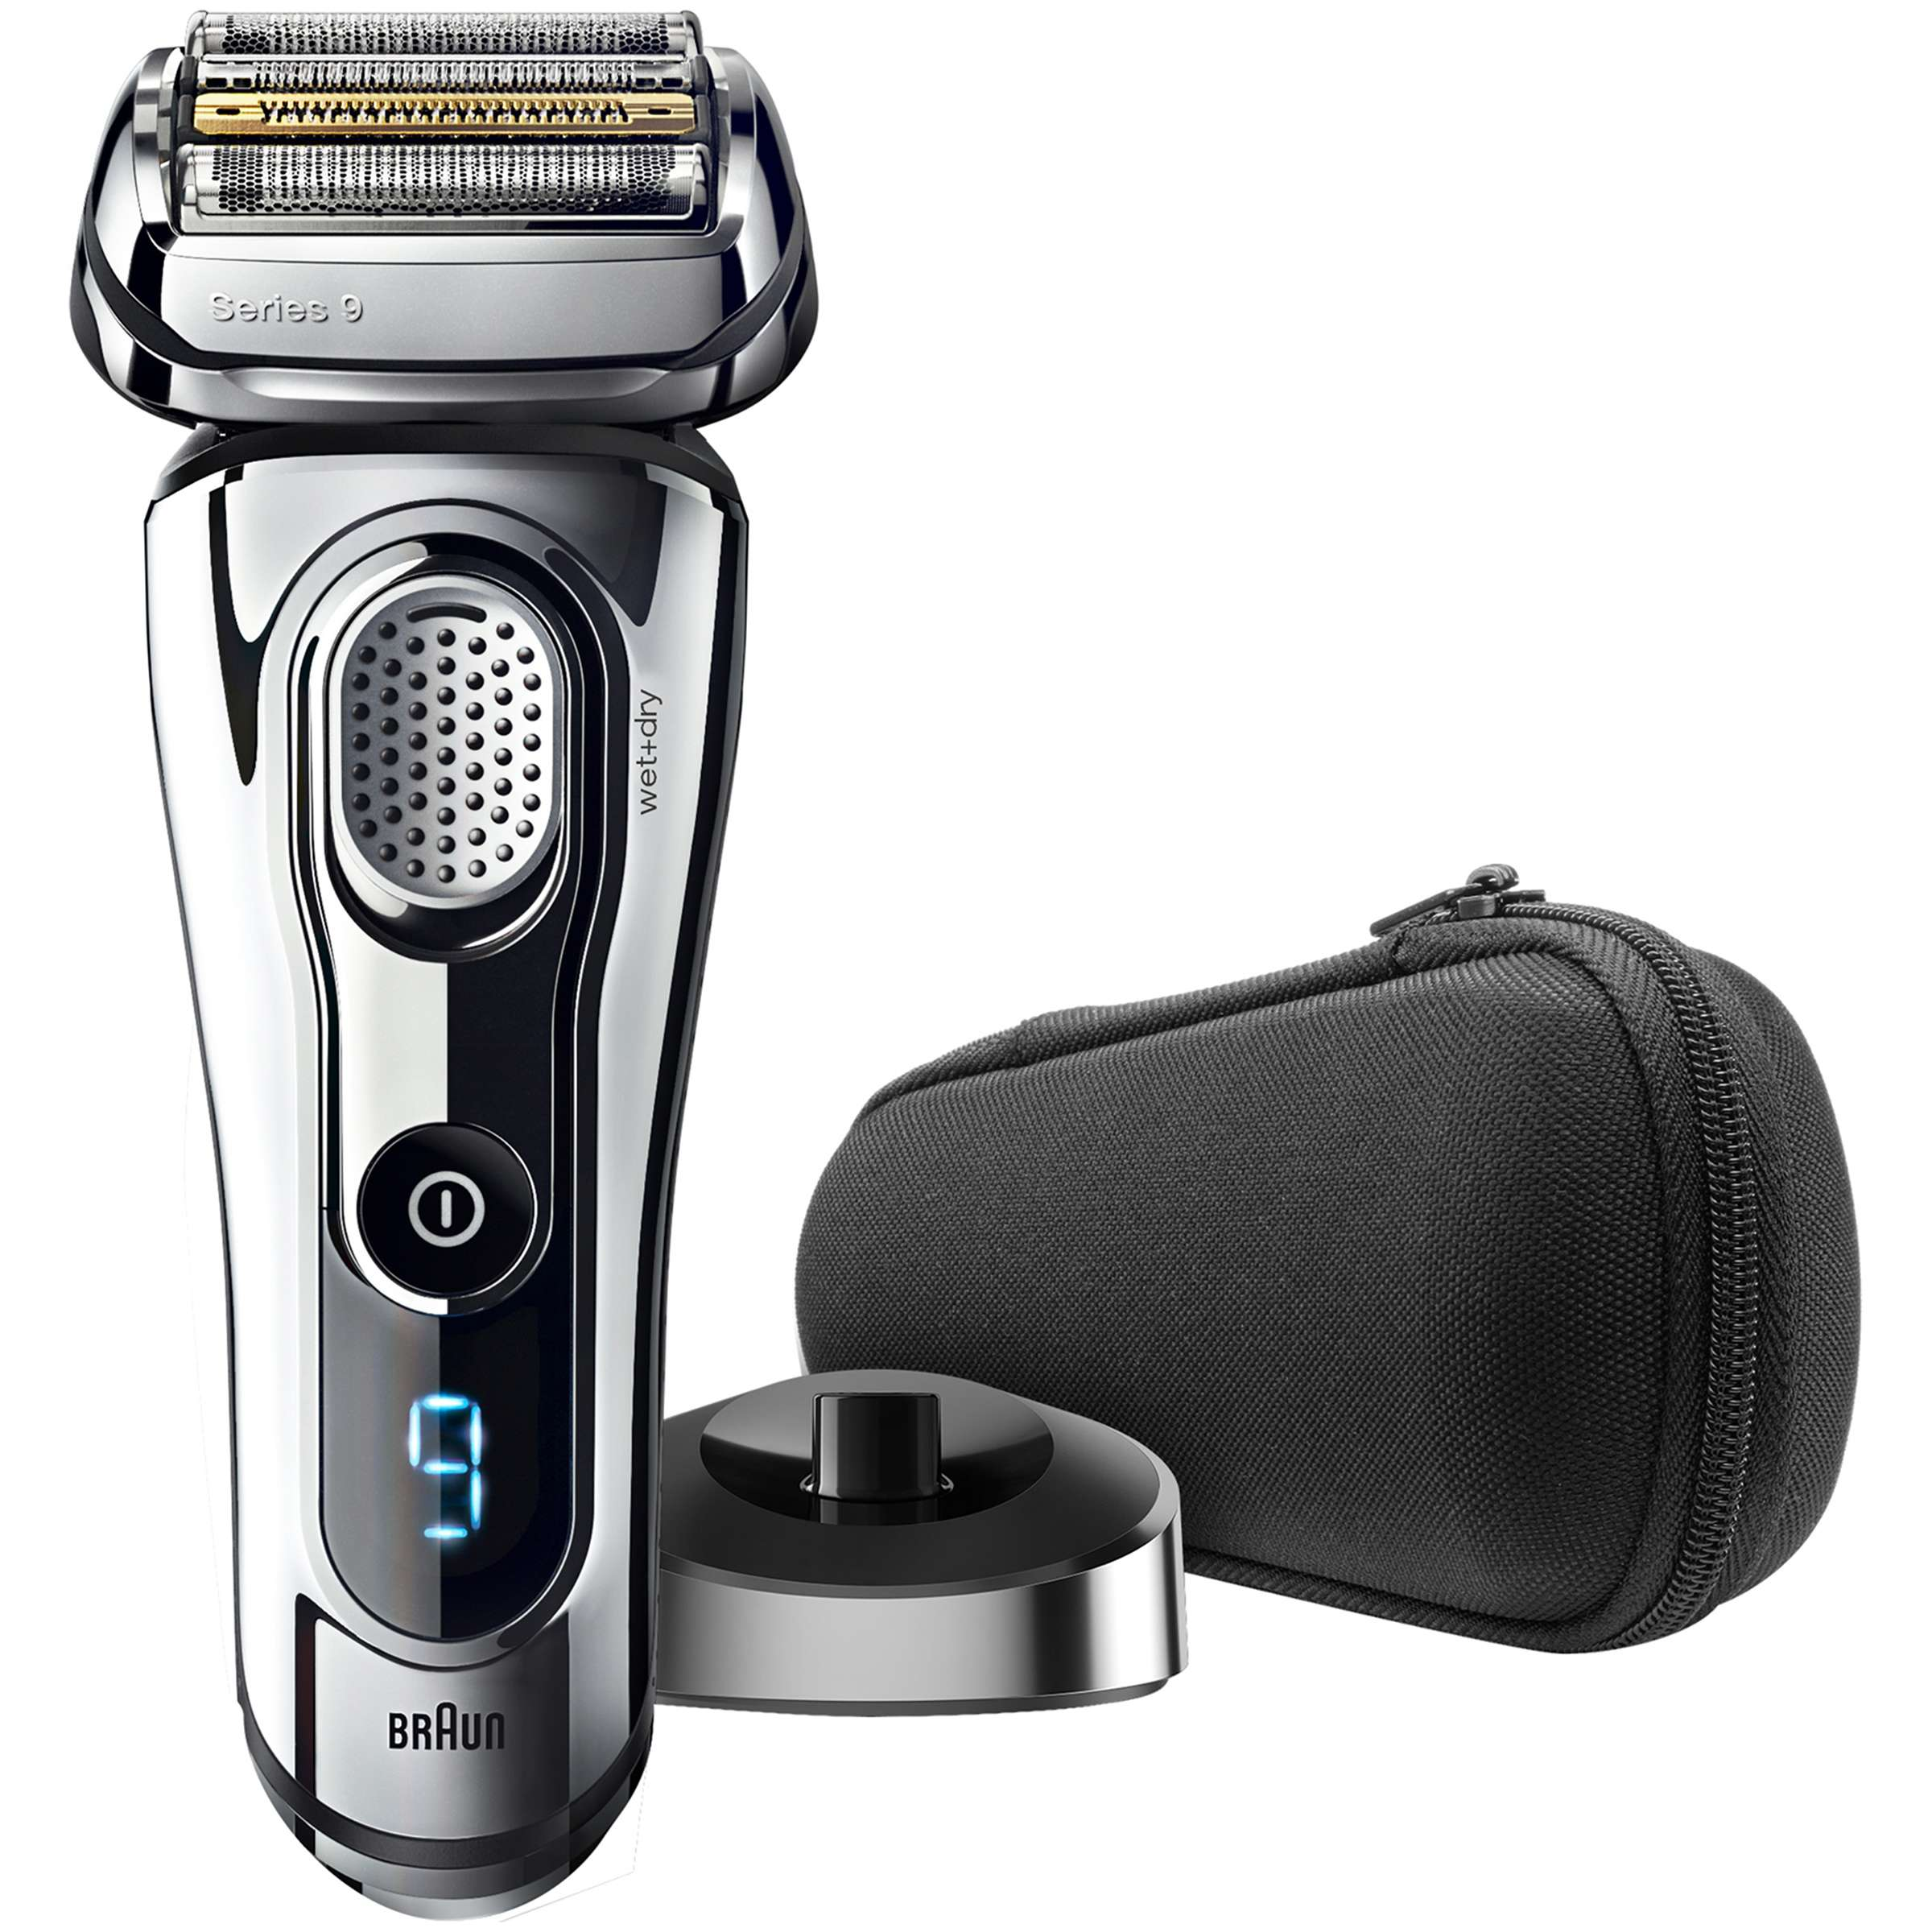 Braun Series 9 9293s Men's Electric Foil Shaver, Wet and Dry Razor with Charging Stand and Travel case